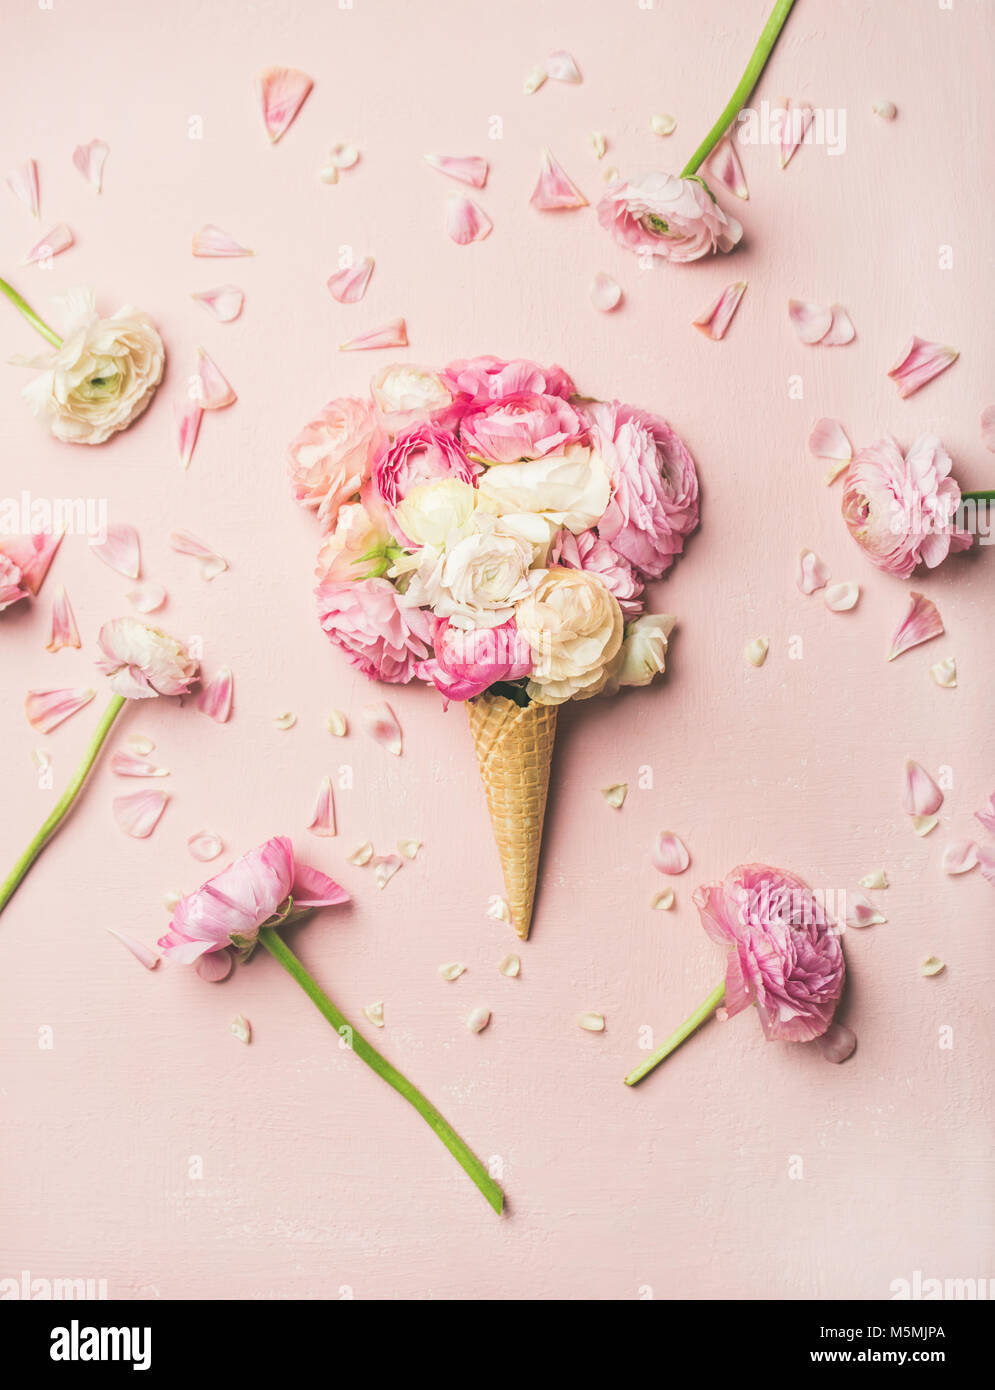 Waffle cone with pink and white buttercup flowers - Stock Image